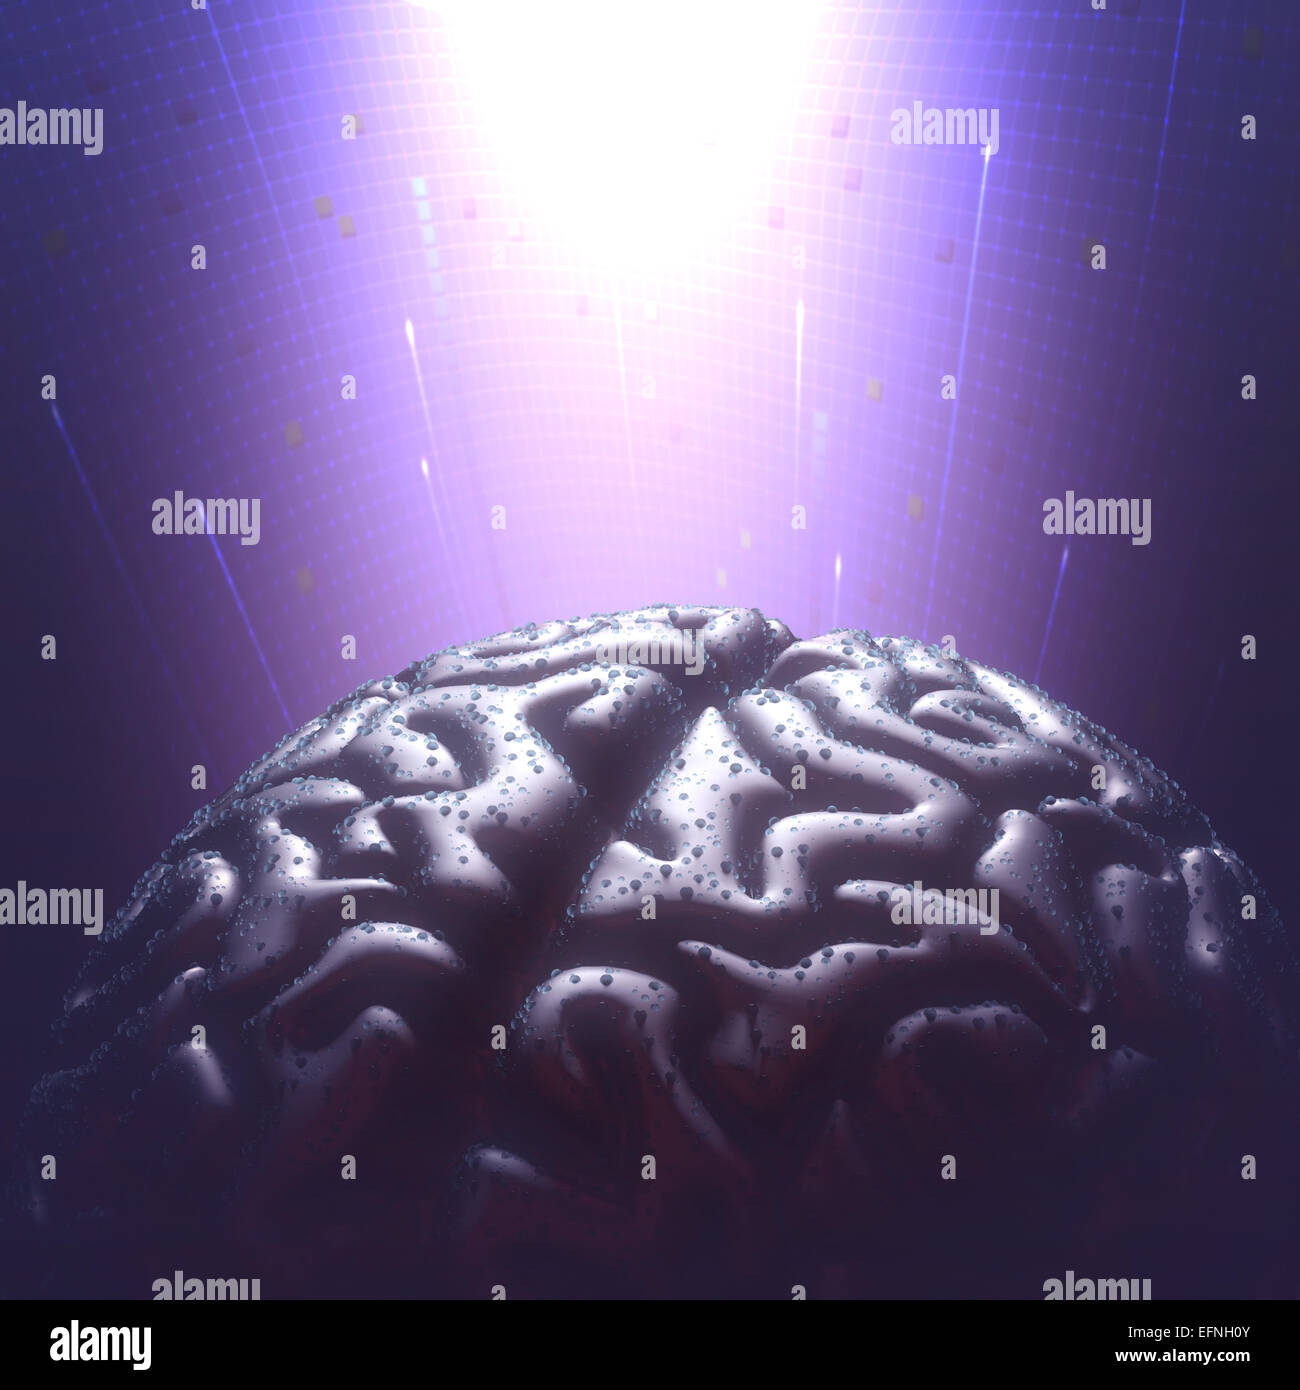 Metal brain with rain droplets in a dark environment. Copy space and clipping path included. - Stock Image